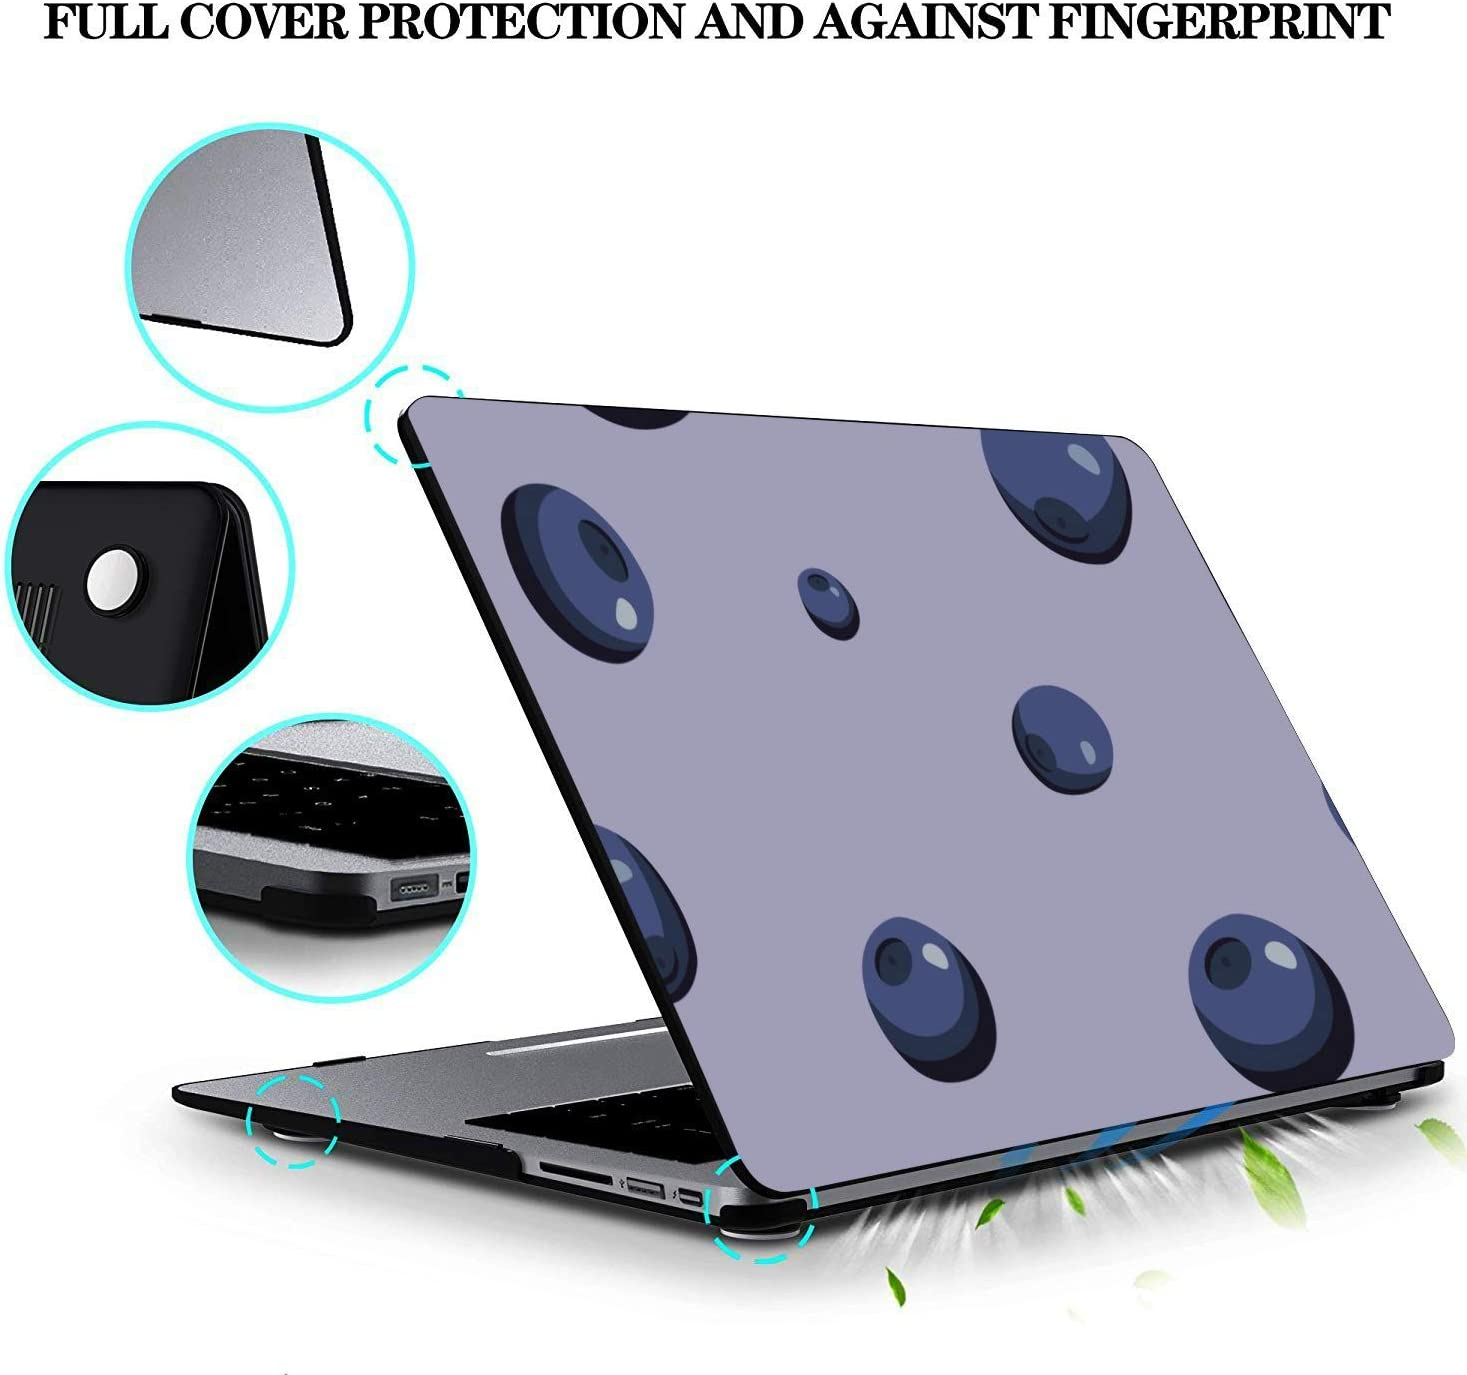 2018 MacBook Pro Case Summer Sweet Sour Fruit Blueberry Plastic Hard Shell Compatible Mac Air 11 Pro 13 15 MacBook Computer Case Protection for MacBook 2016-2019 Version